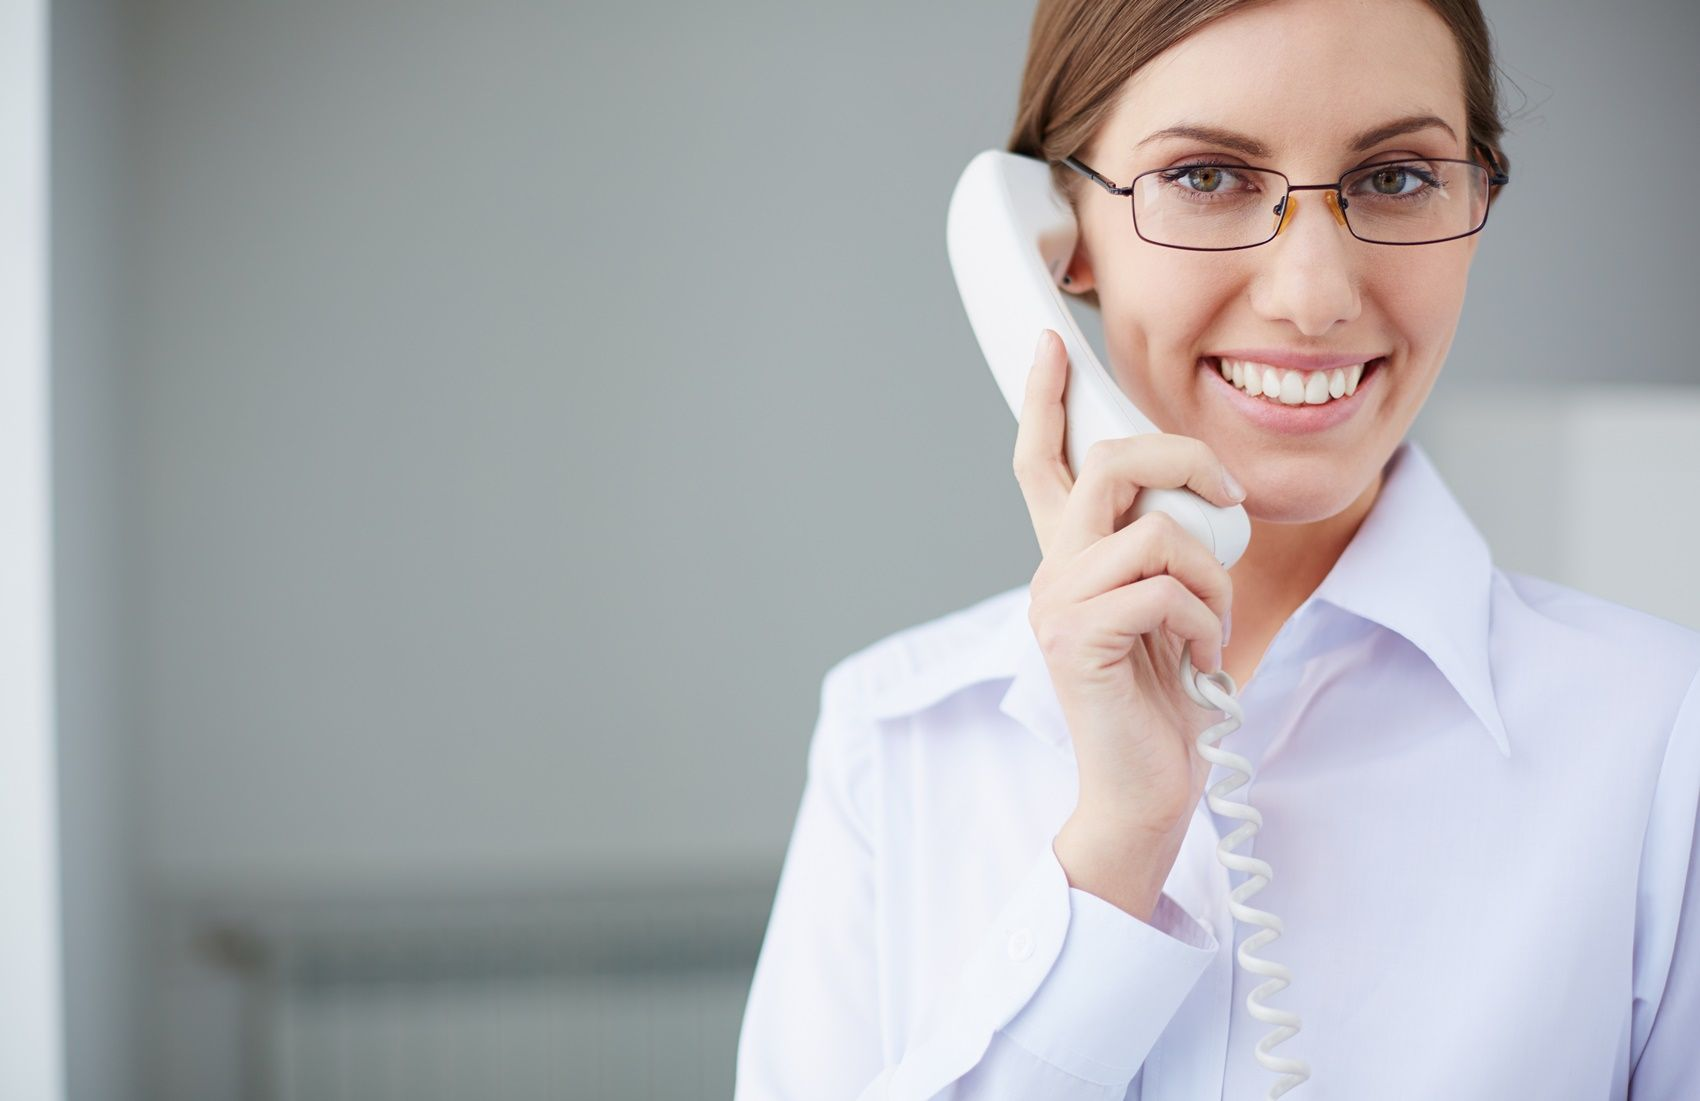 Common mistakes made by secretaries in clinics and offices